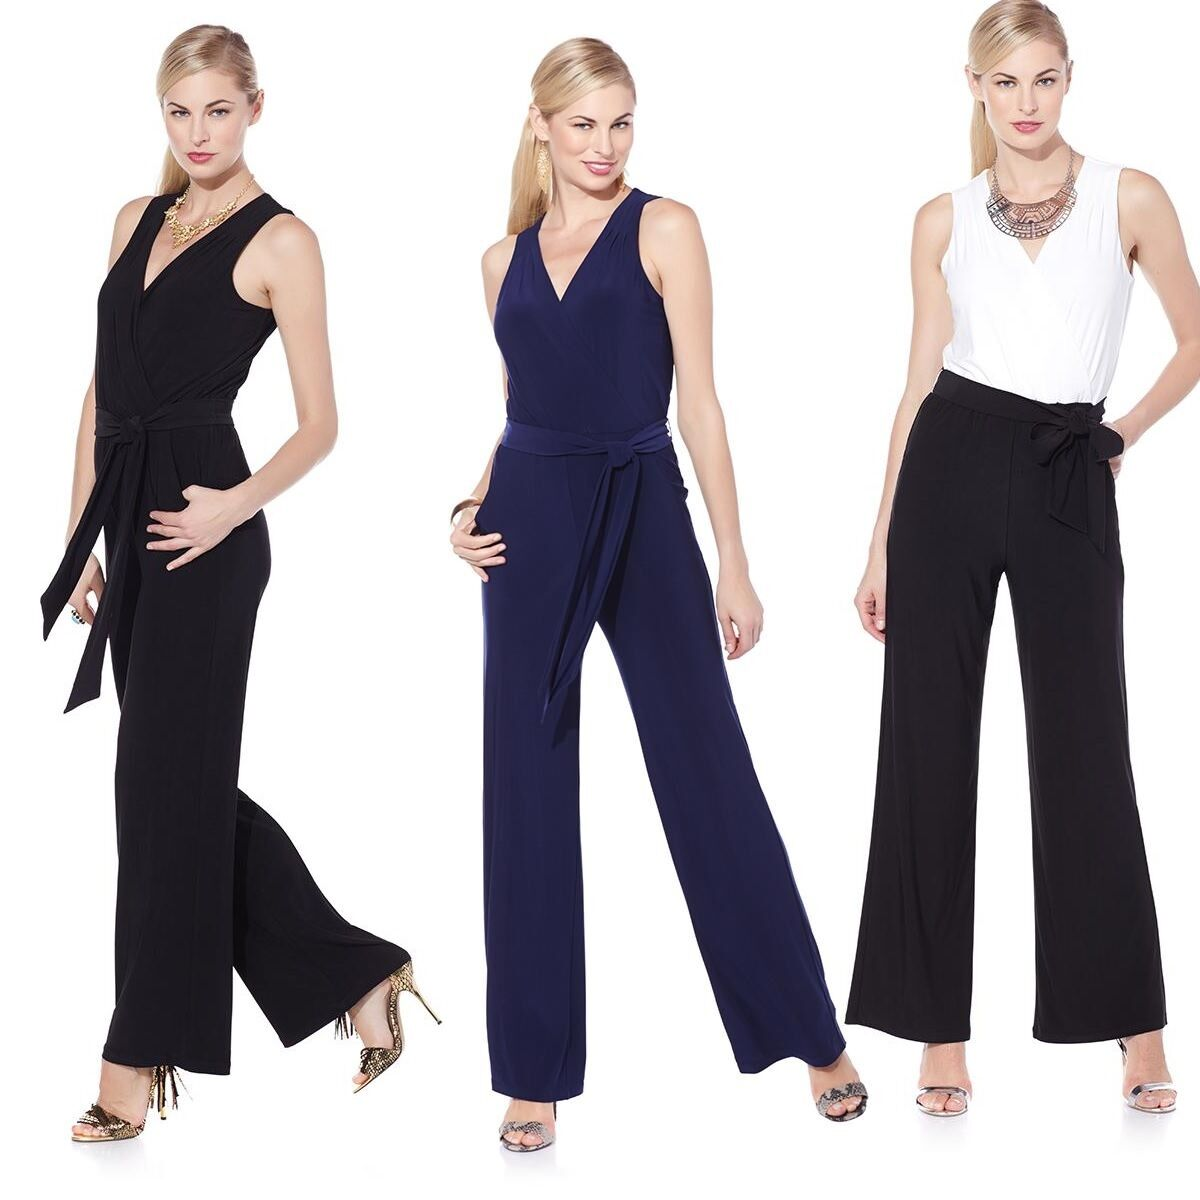 98 Nikki by Nikki Poulos  West  Jersey Jumpsuit 398224AJ (S,Navy)  59.95